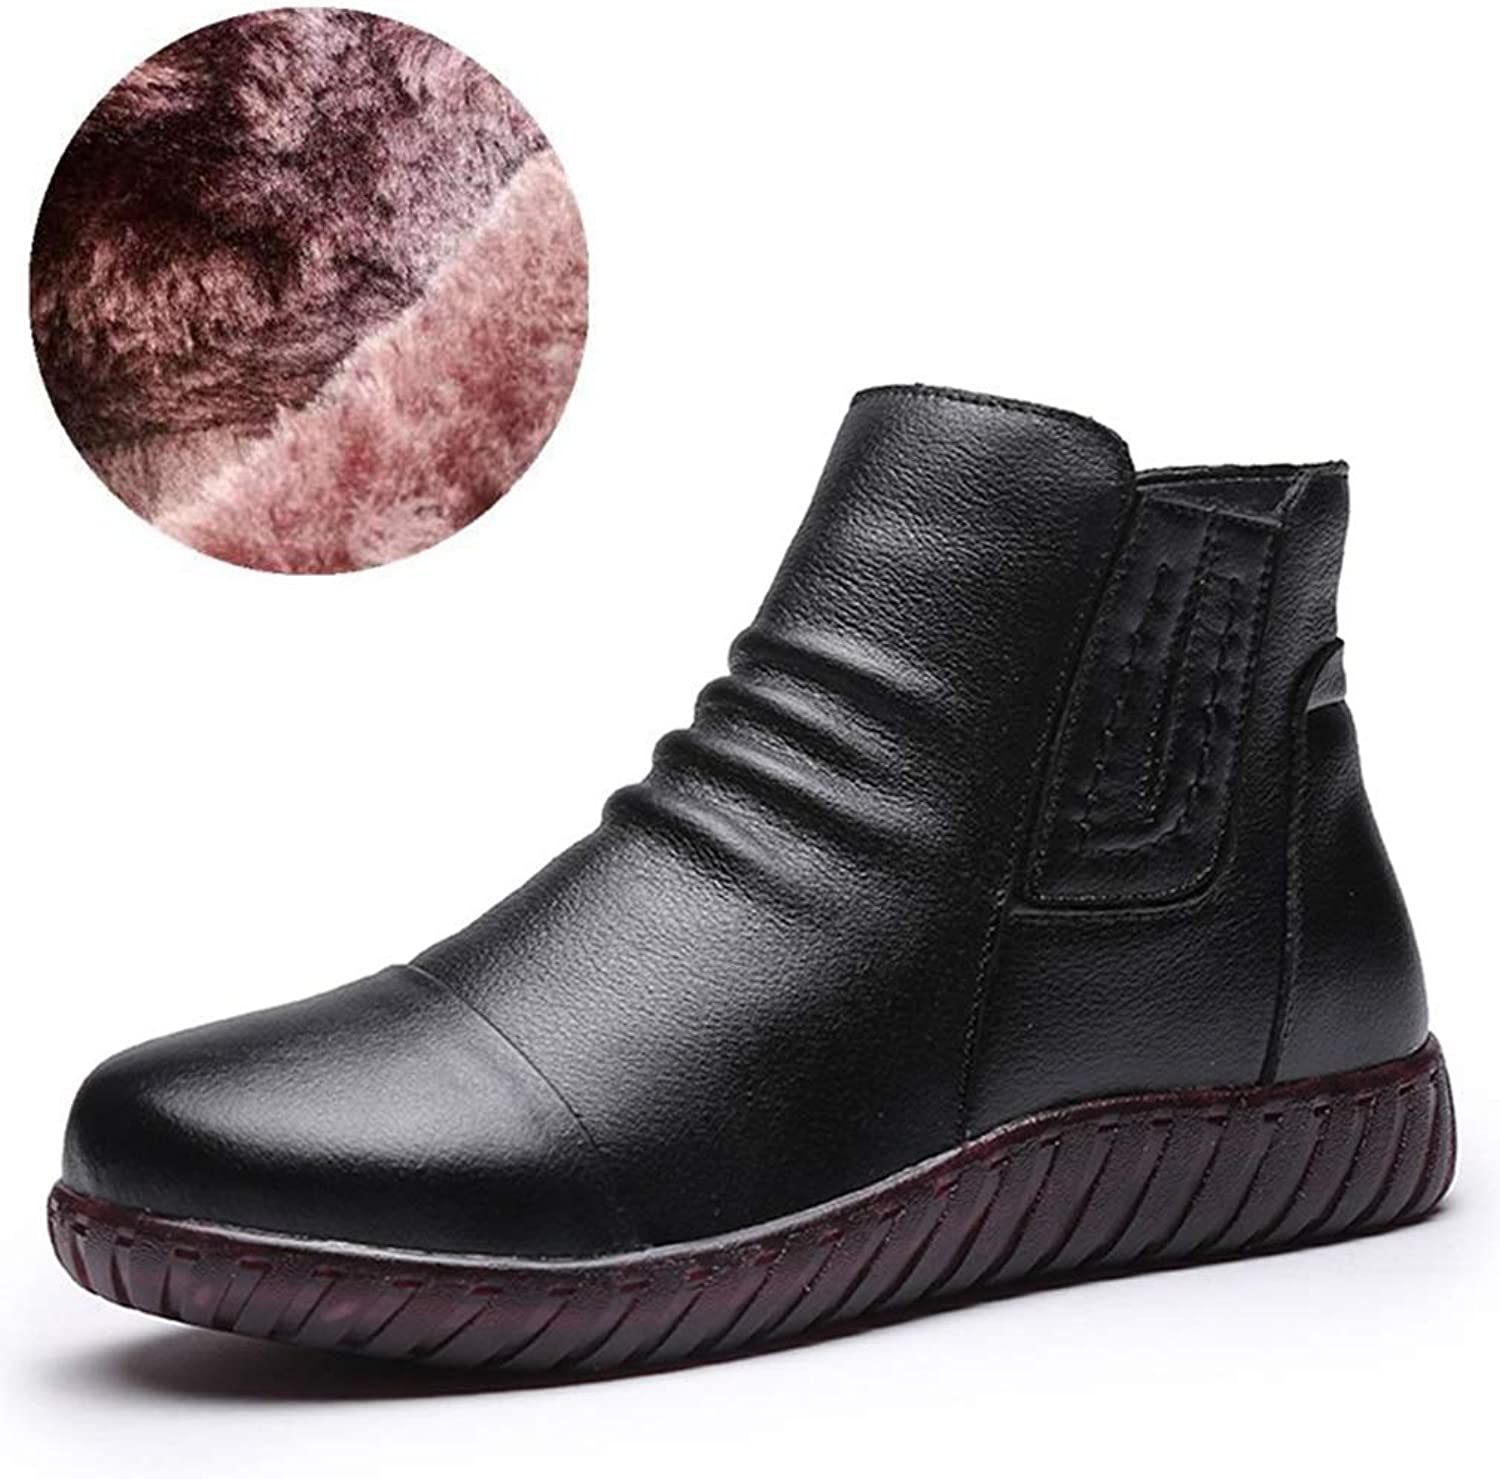 Hoxekle Winter Snow Boots Women Faux Leather Thick Plush Ankle Boots for Women Warm shoes Female Cotton Boots